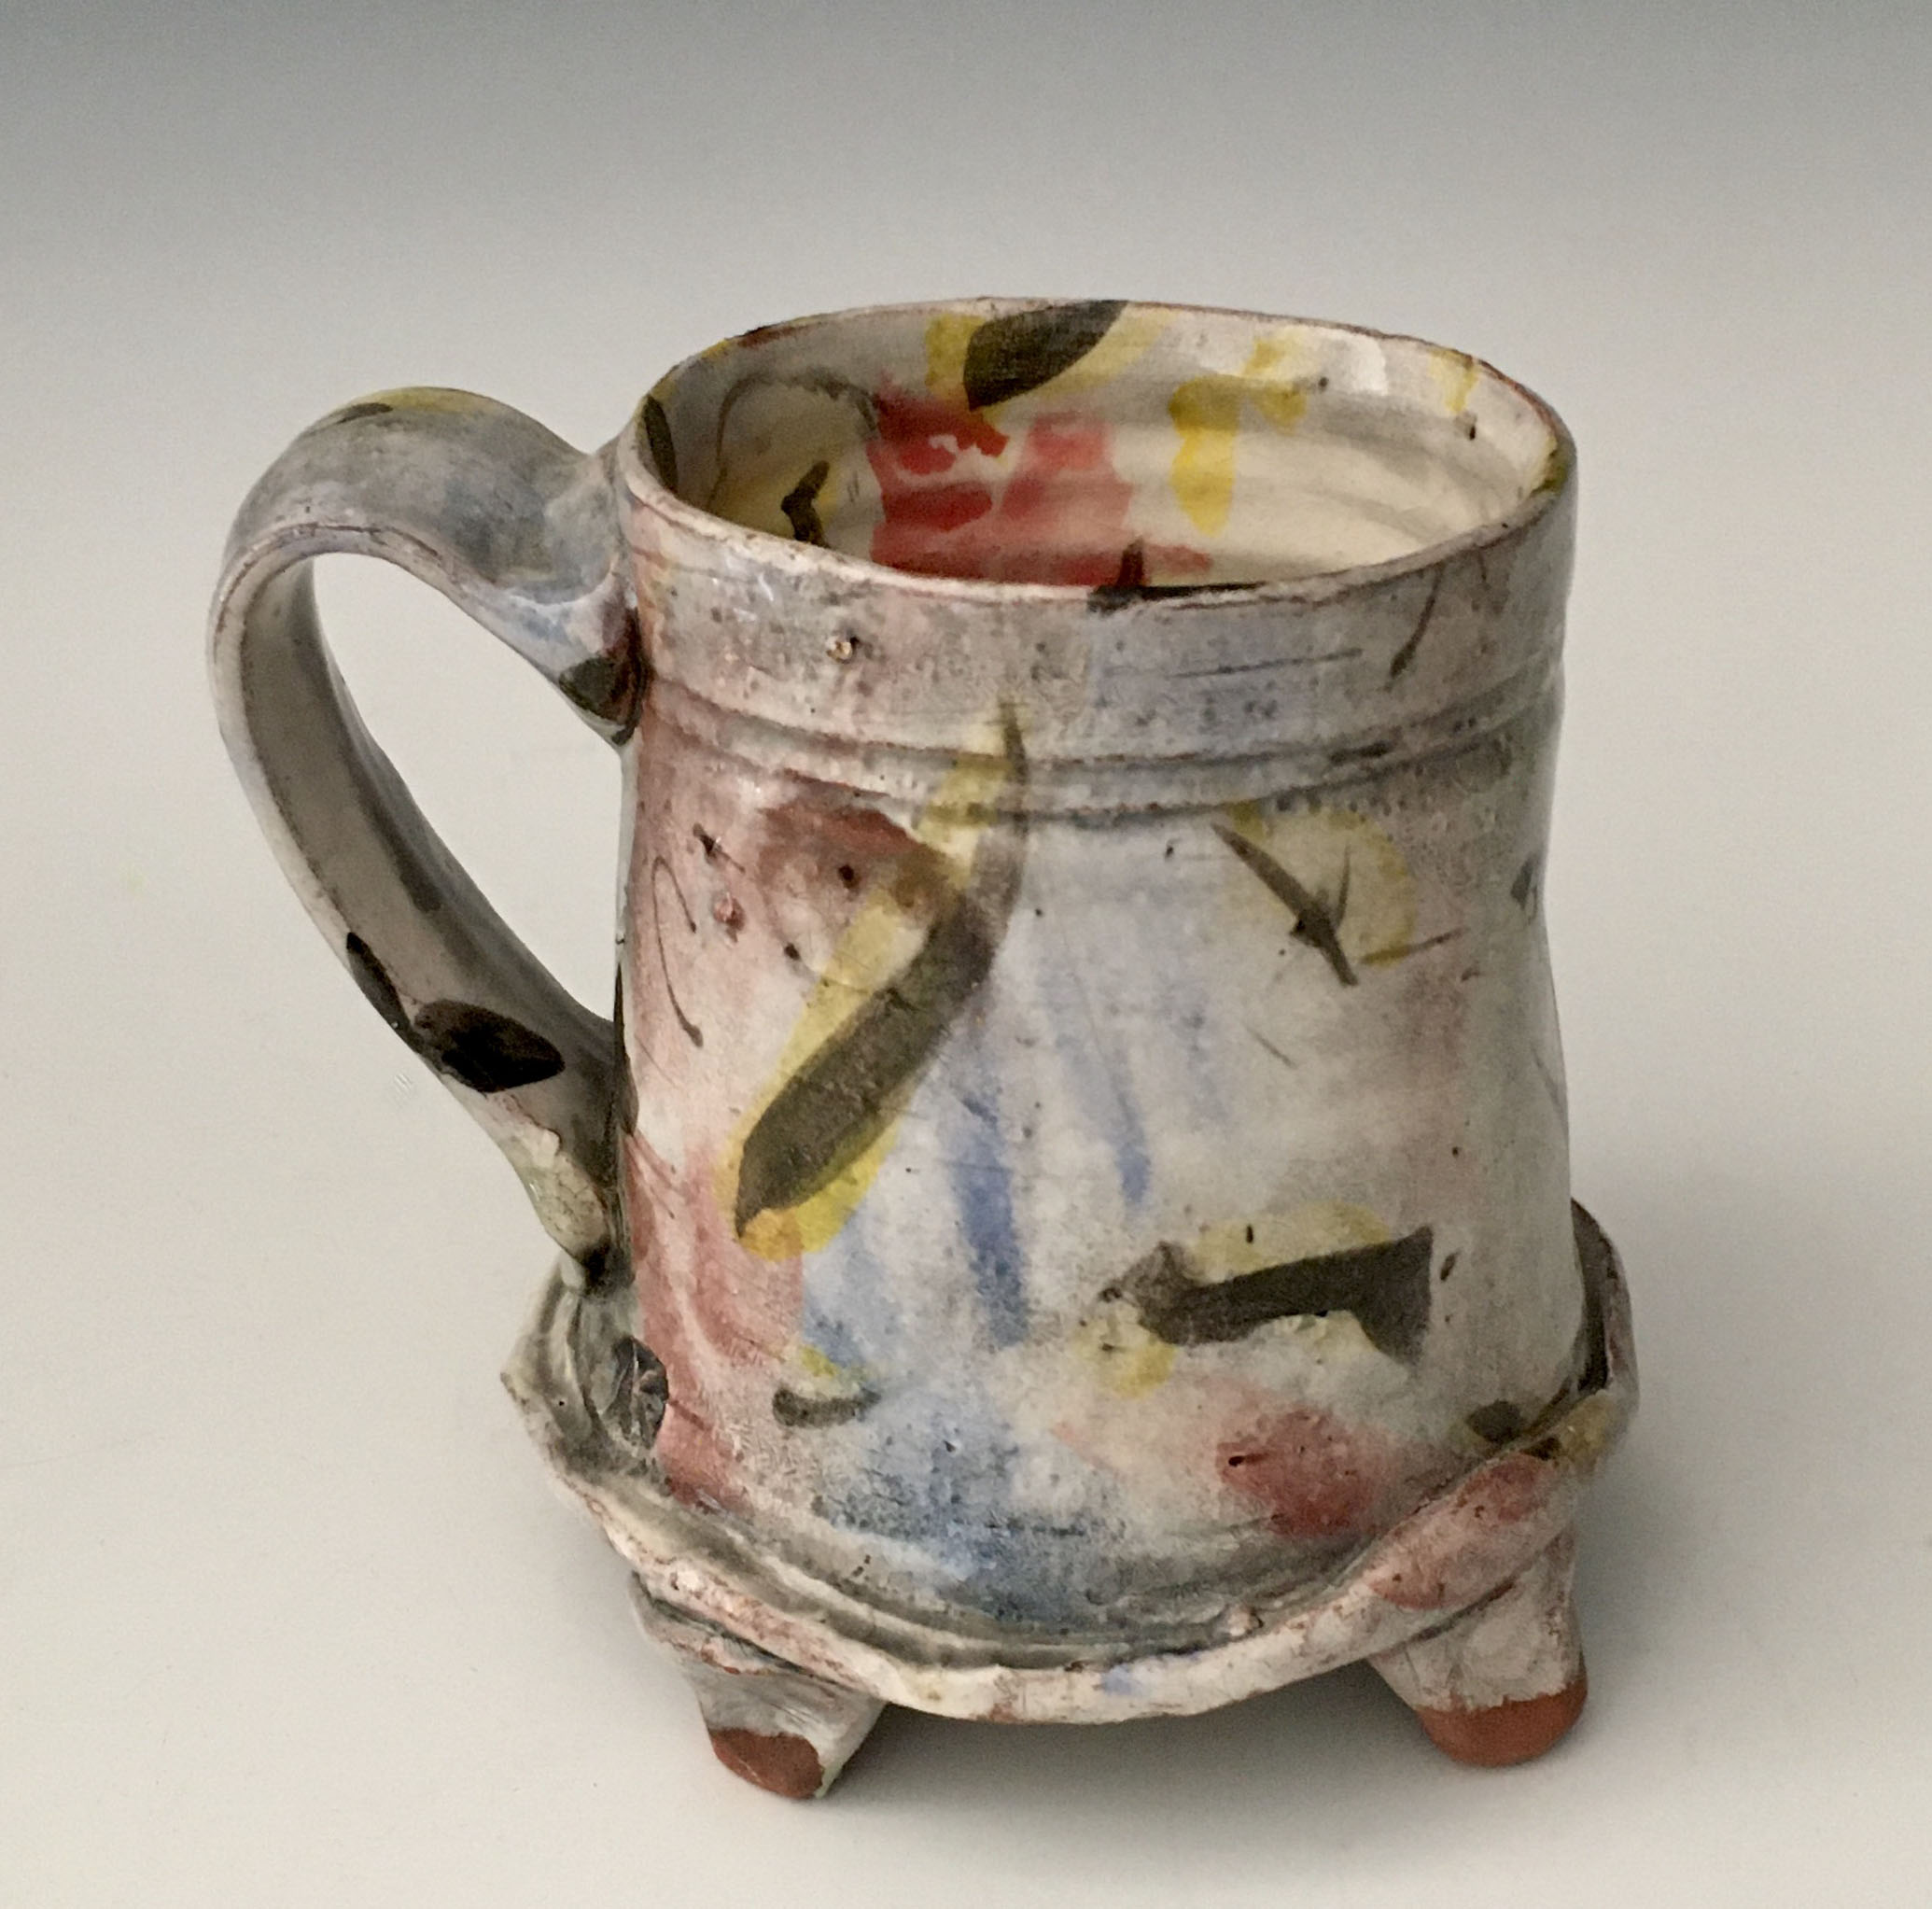 Ceramics 421 By A. Koester